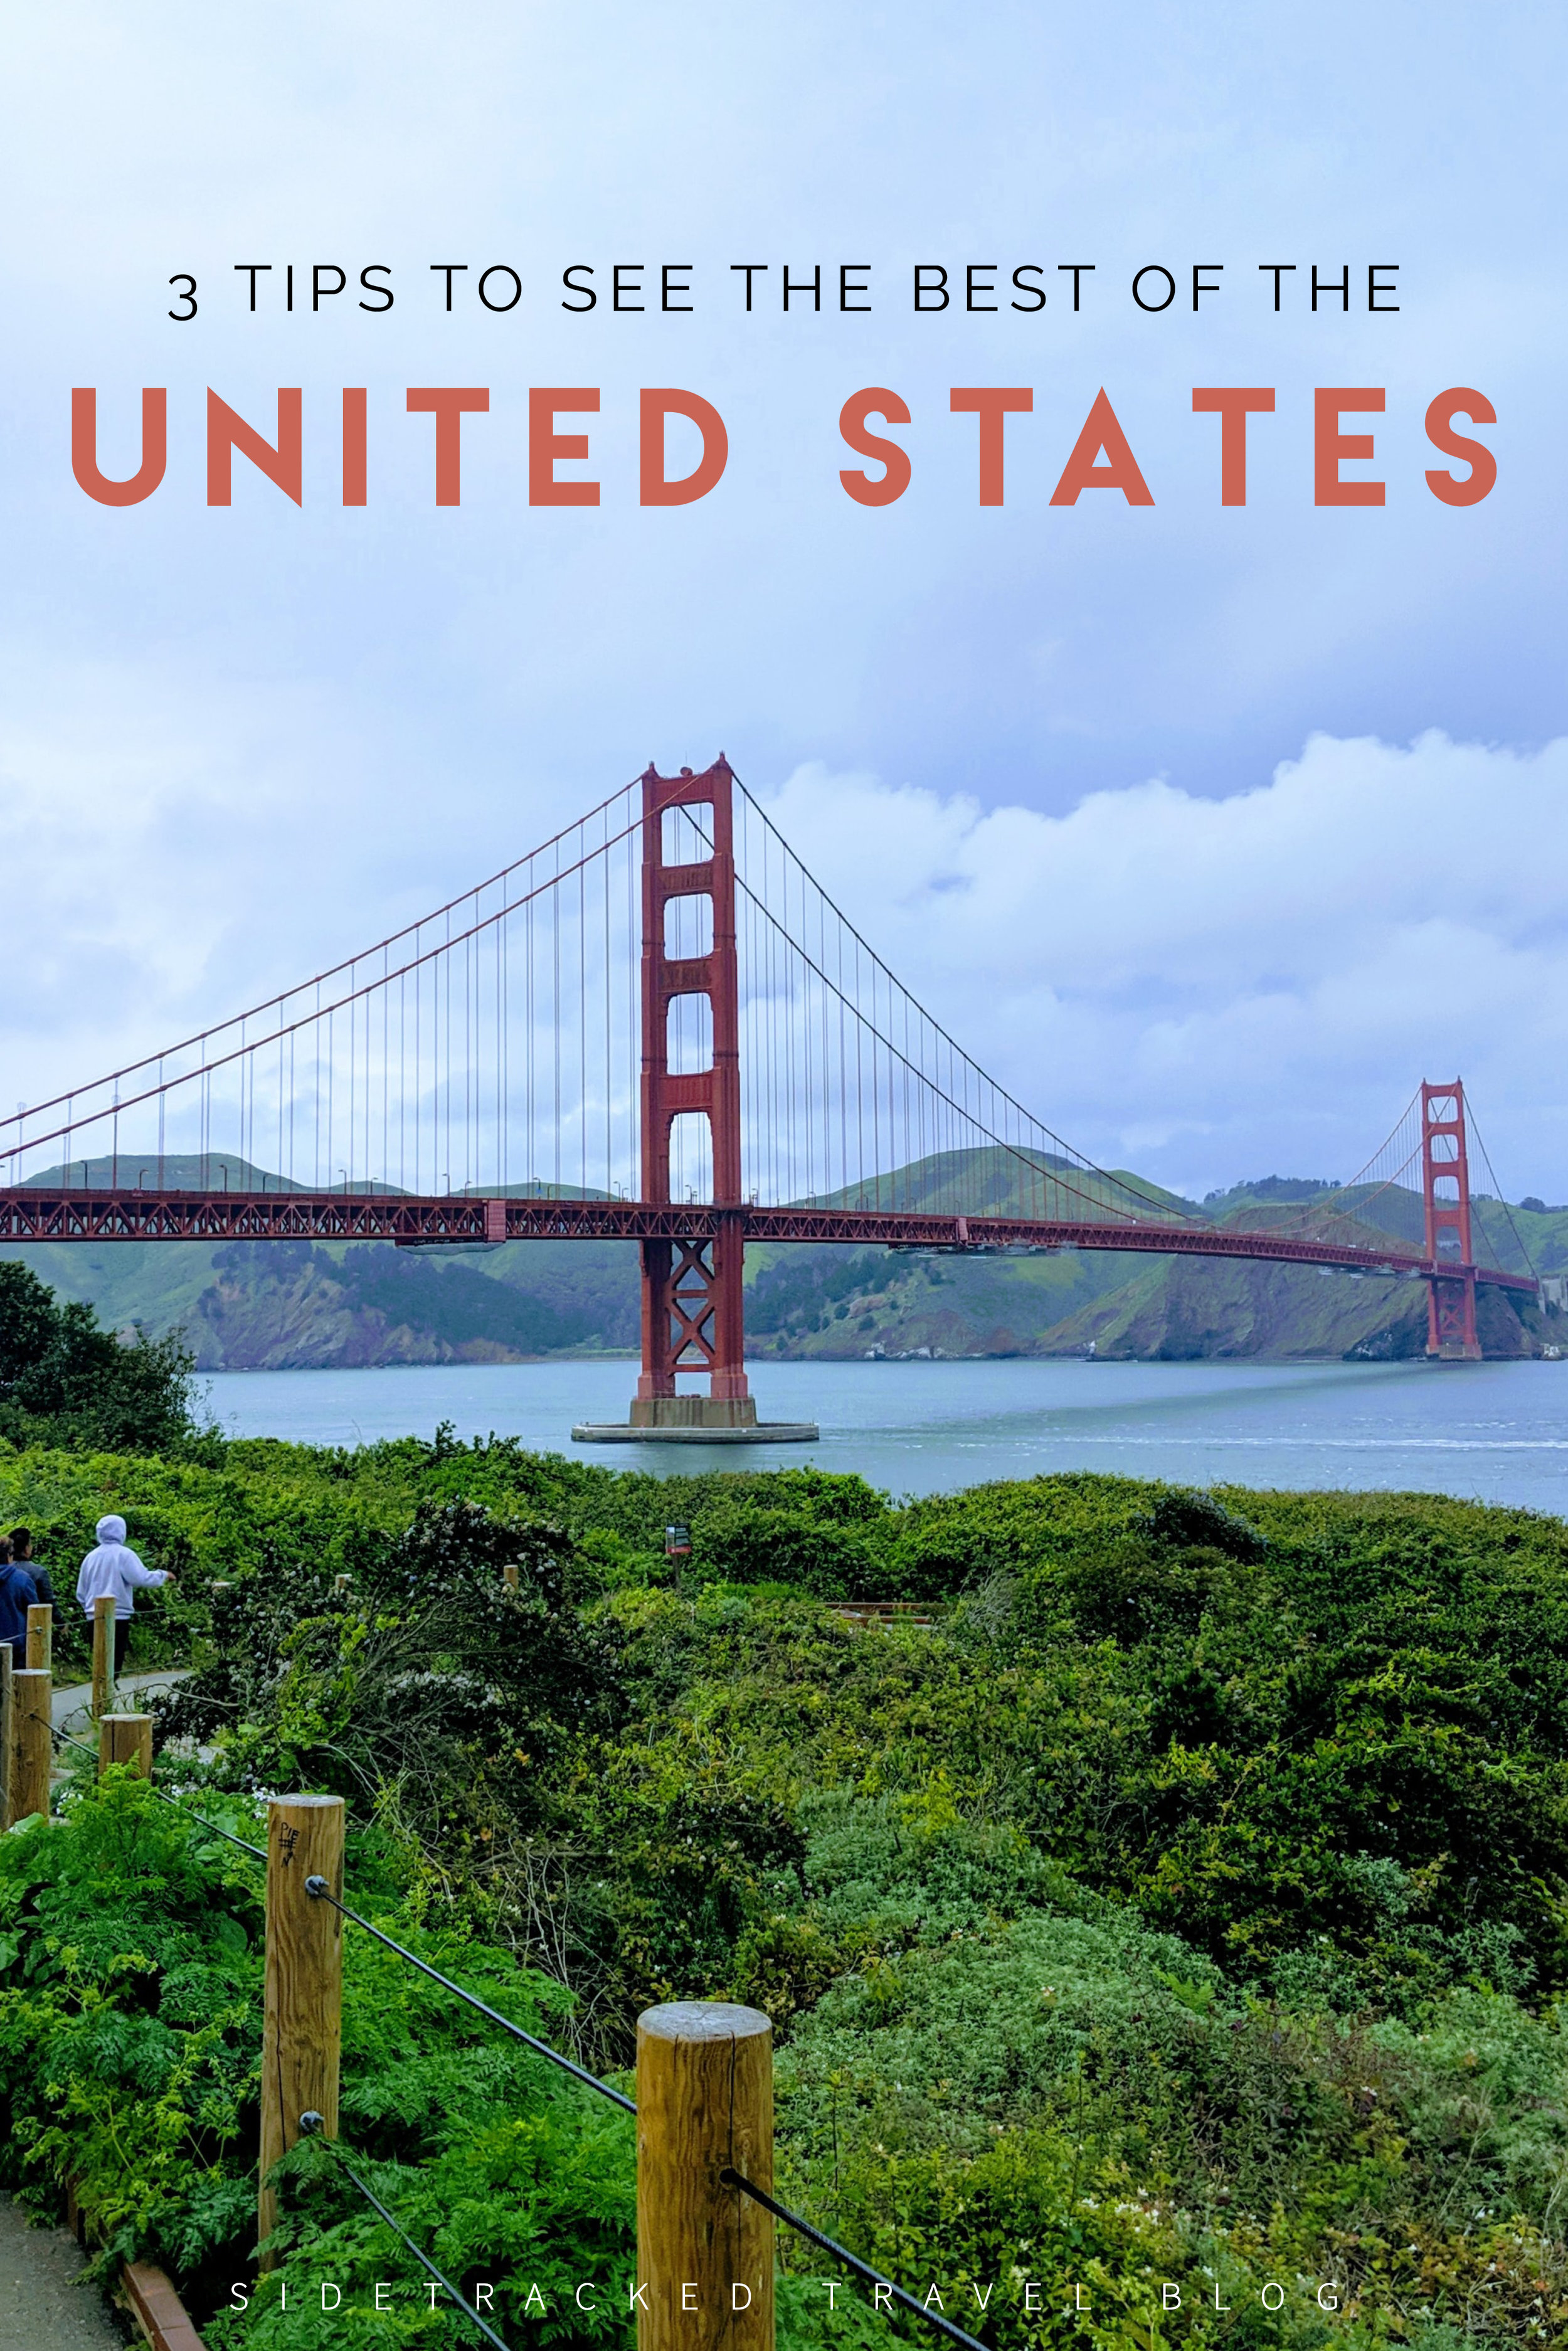 Many vacationers can feel daunted by the sheer scope of things to see in the United States, and if you are unsure as to how to make the best of your trip, this guide will provide you with some top tips.